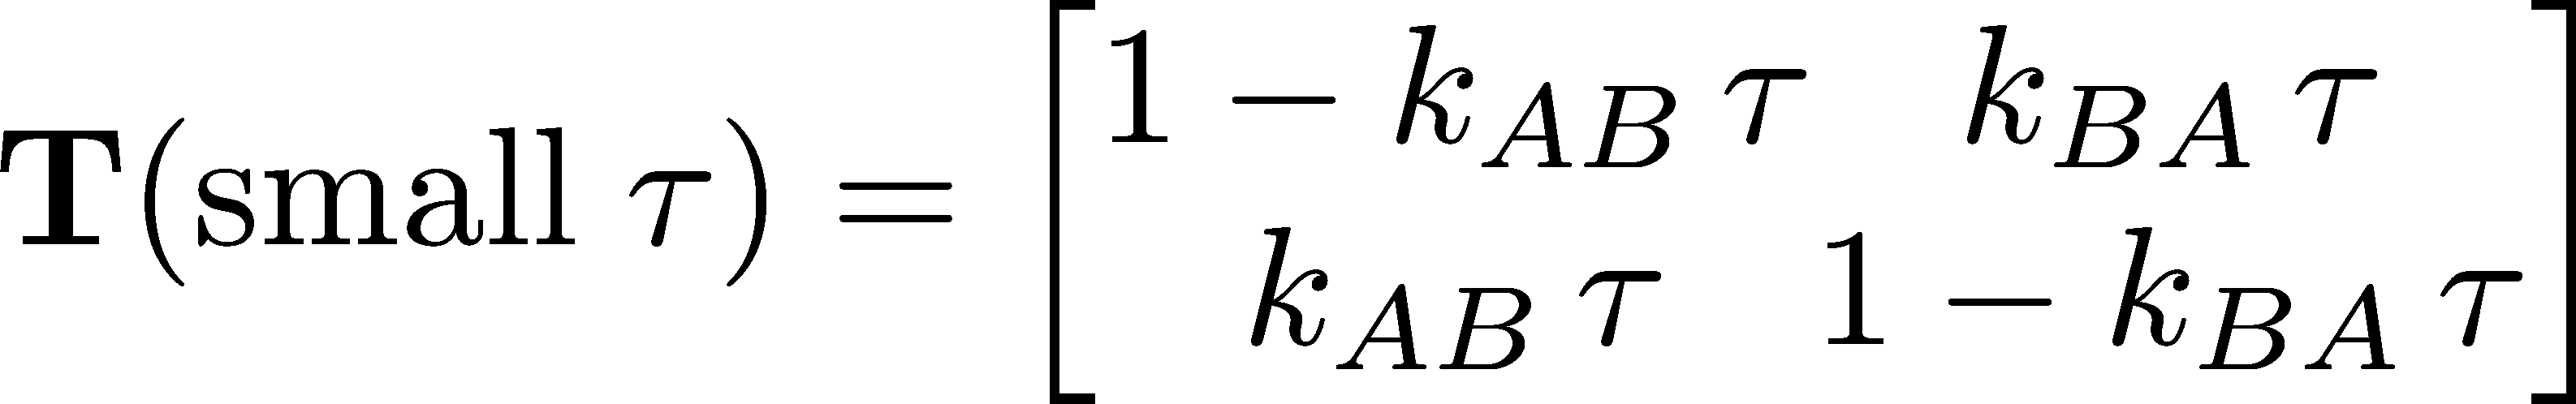 Discrete-state kinetics and Markov models | Physical Lens on